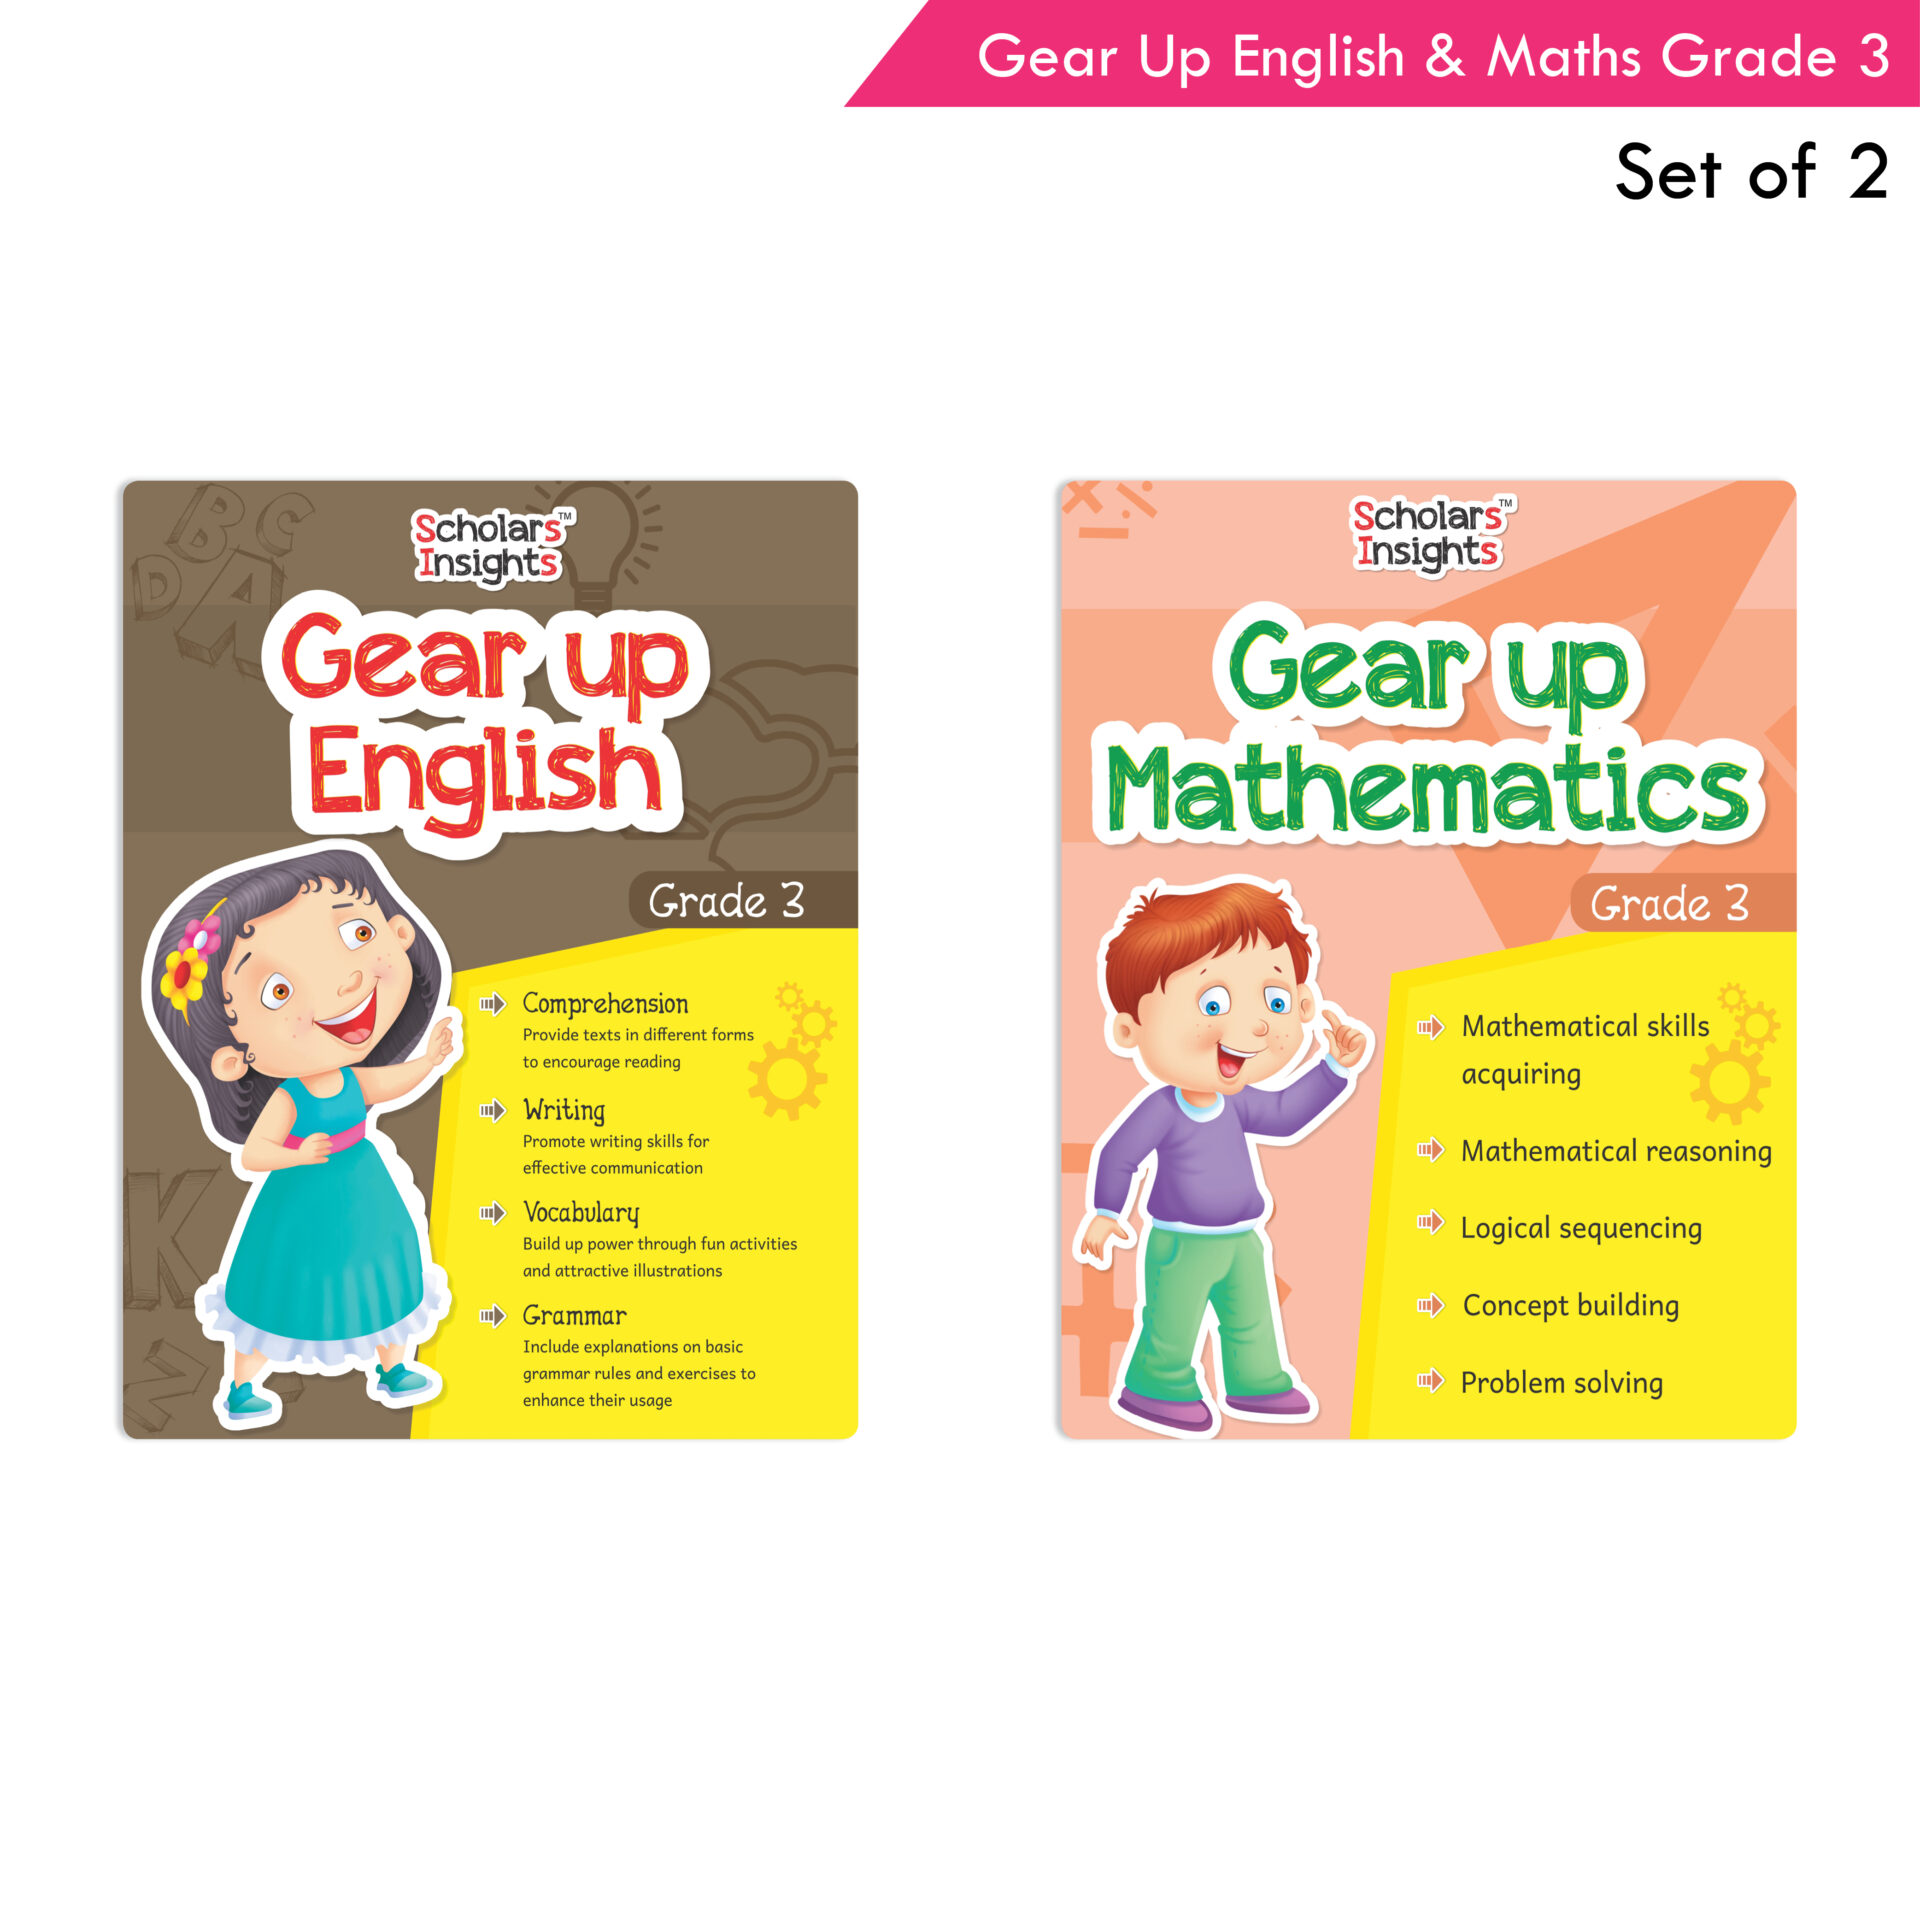 Scholars Insights Gear Up English and Maths Grade 3 Set of 2 1